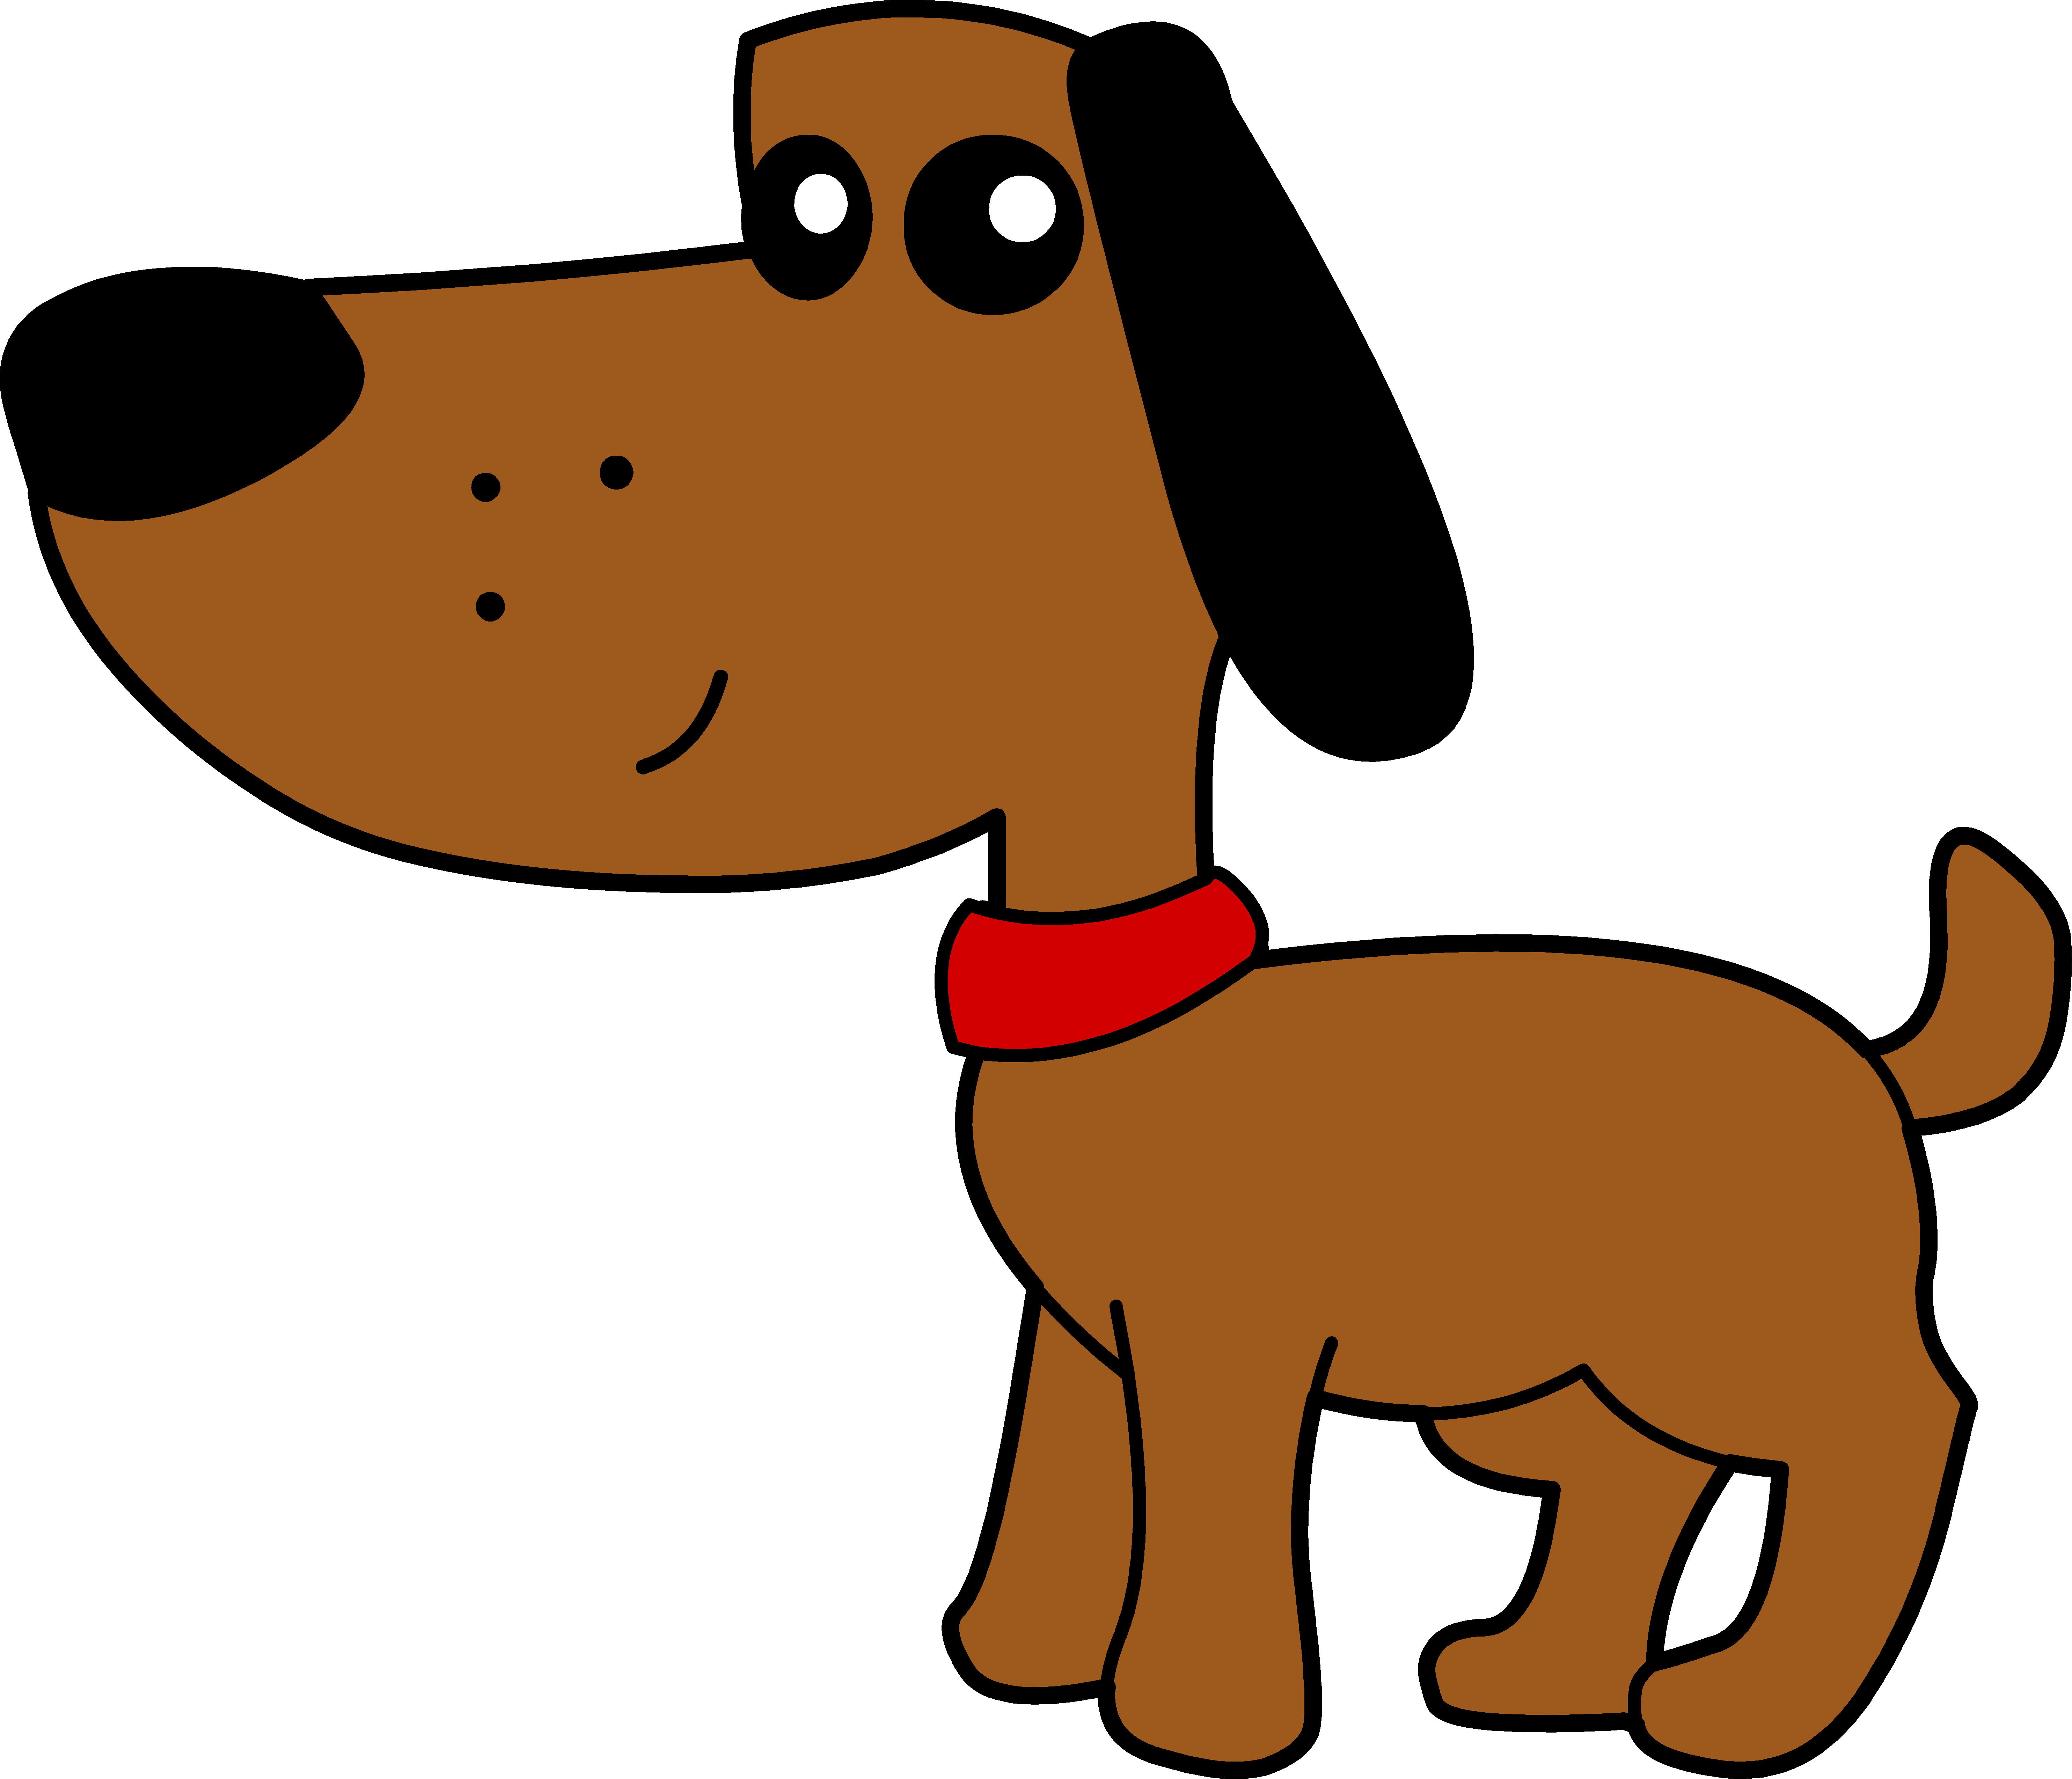 Dog clipart #16, Download drawings